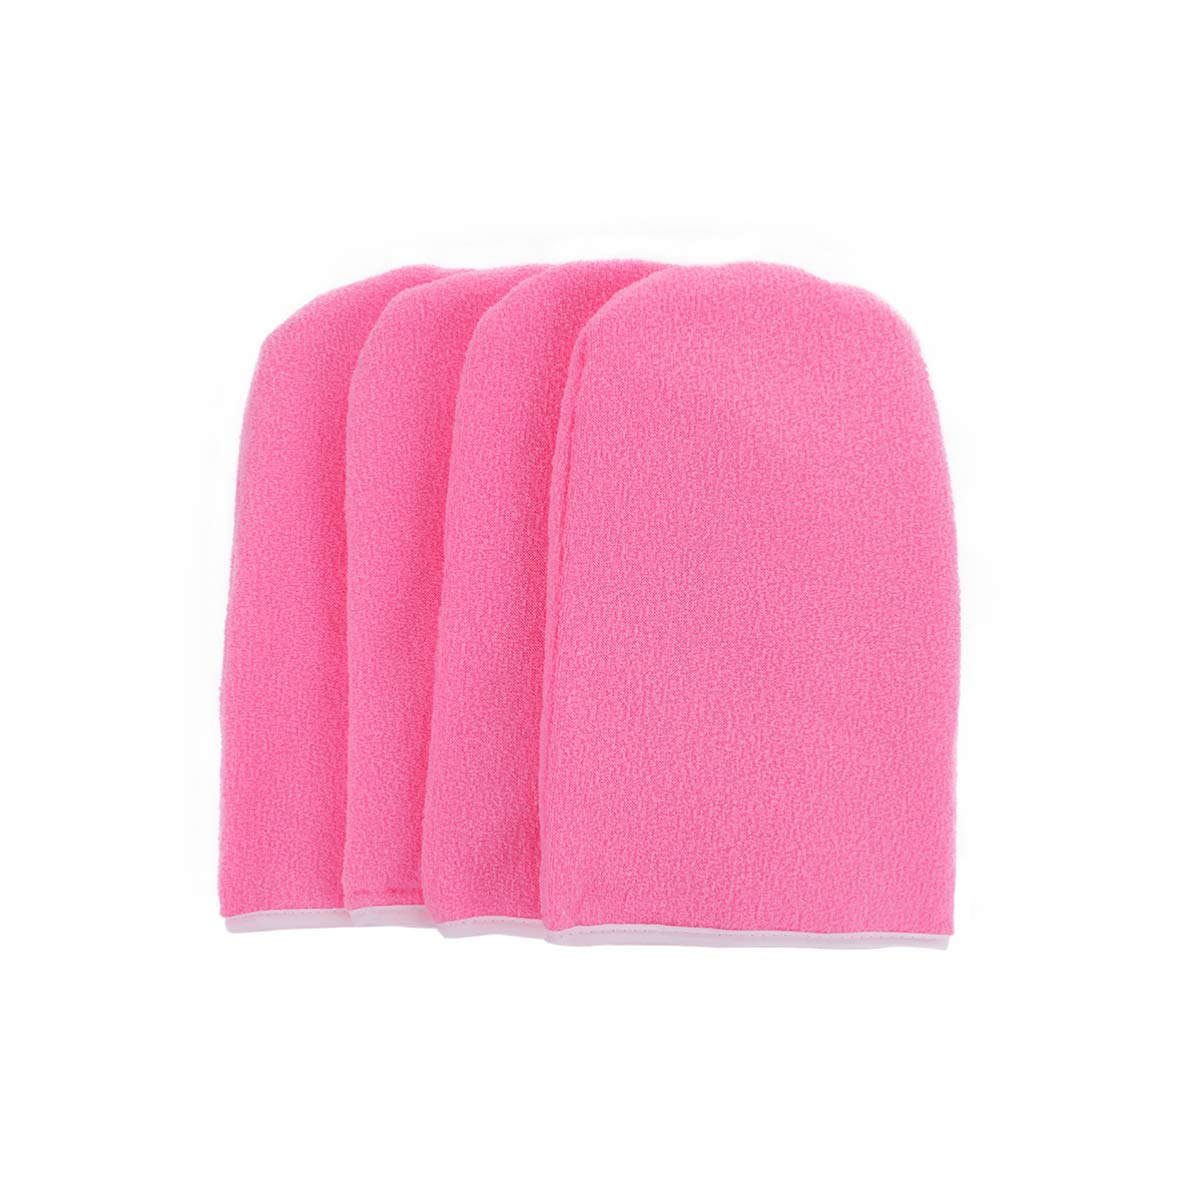 Pixnor 2 Pairs Paraffin Wax Gloves,Terry Cloth Gloves Wax Care Insulated Mittens Cotton Mitts for Paraffin Wax Bath(Pink)